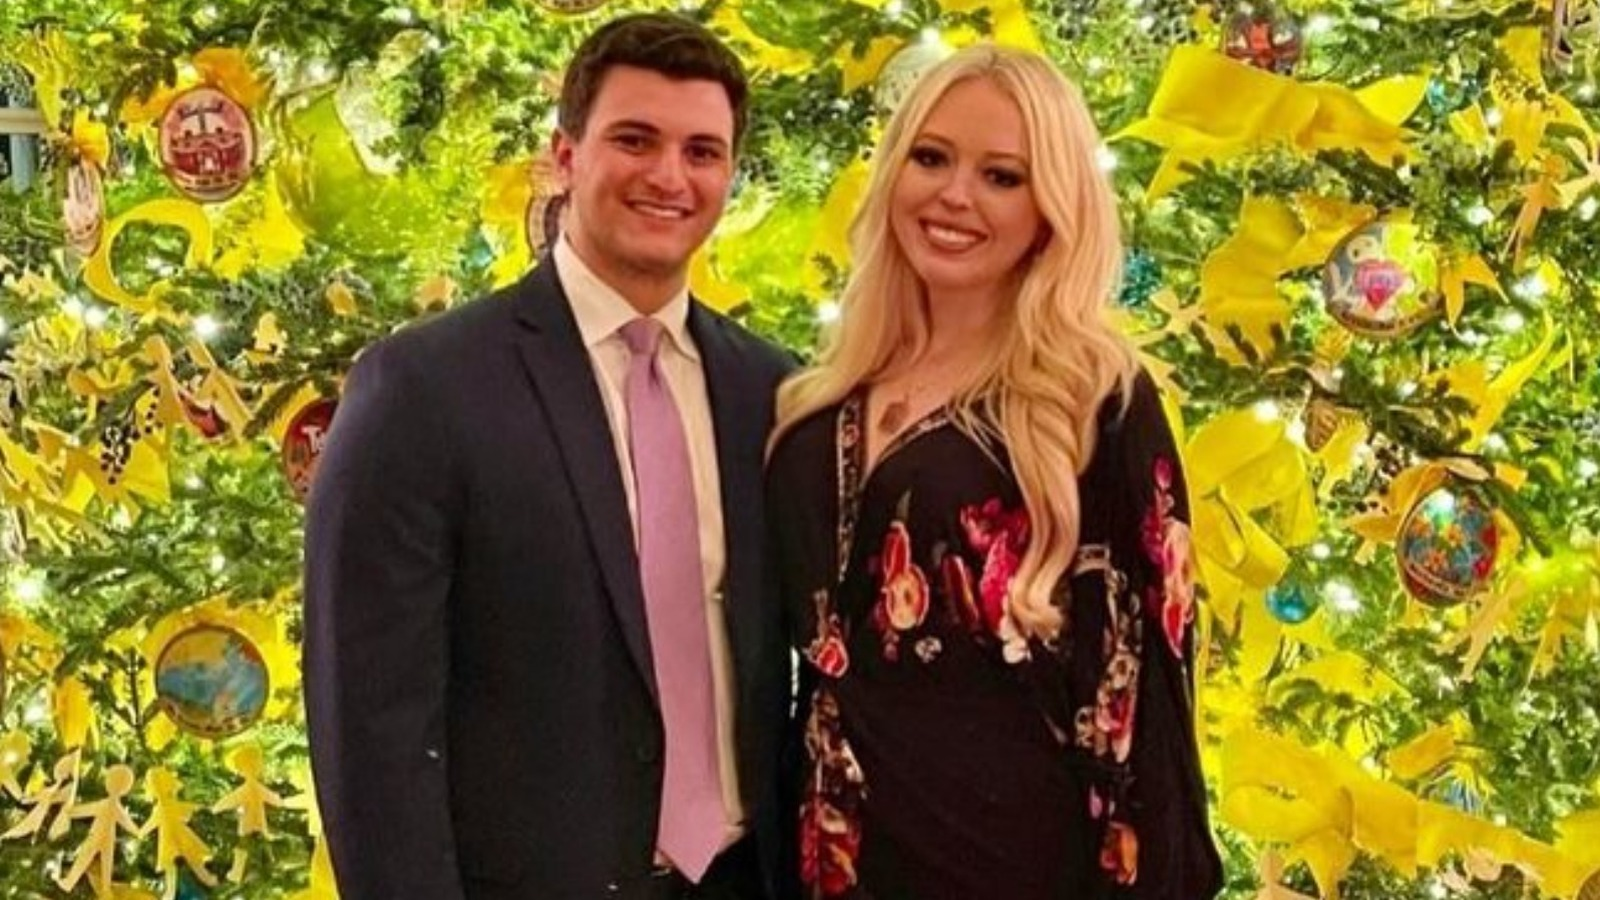 The Truth About Tiffany Trump And Michael Boulos' Relationship